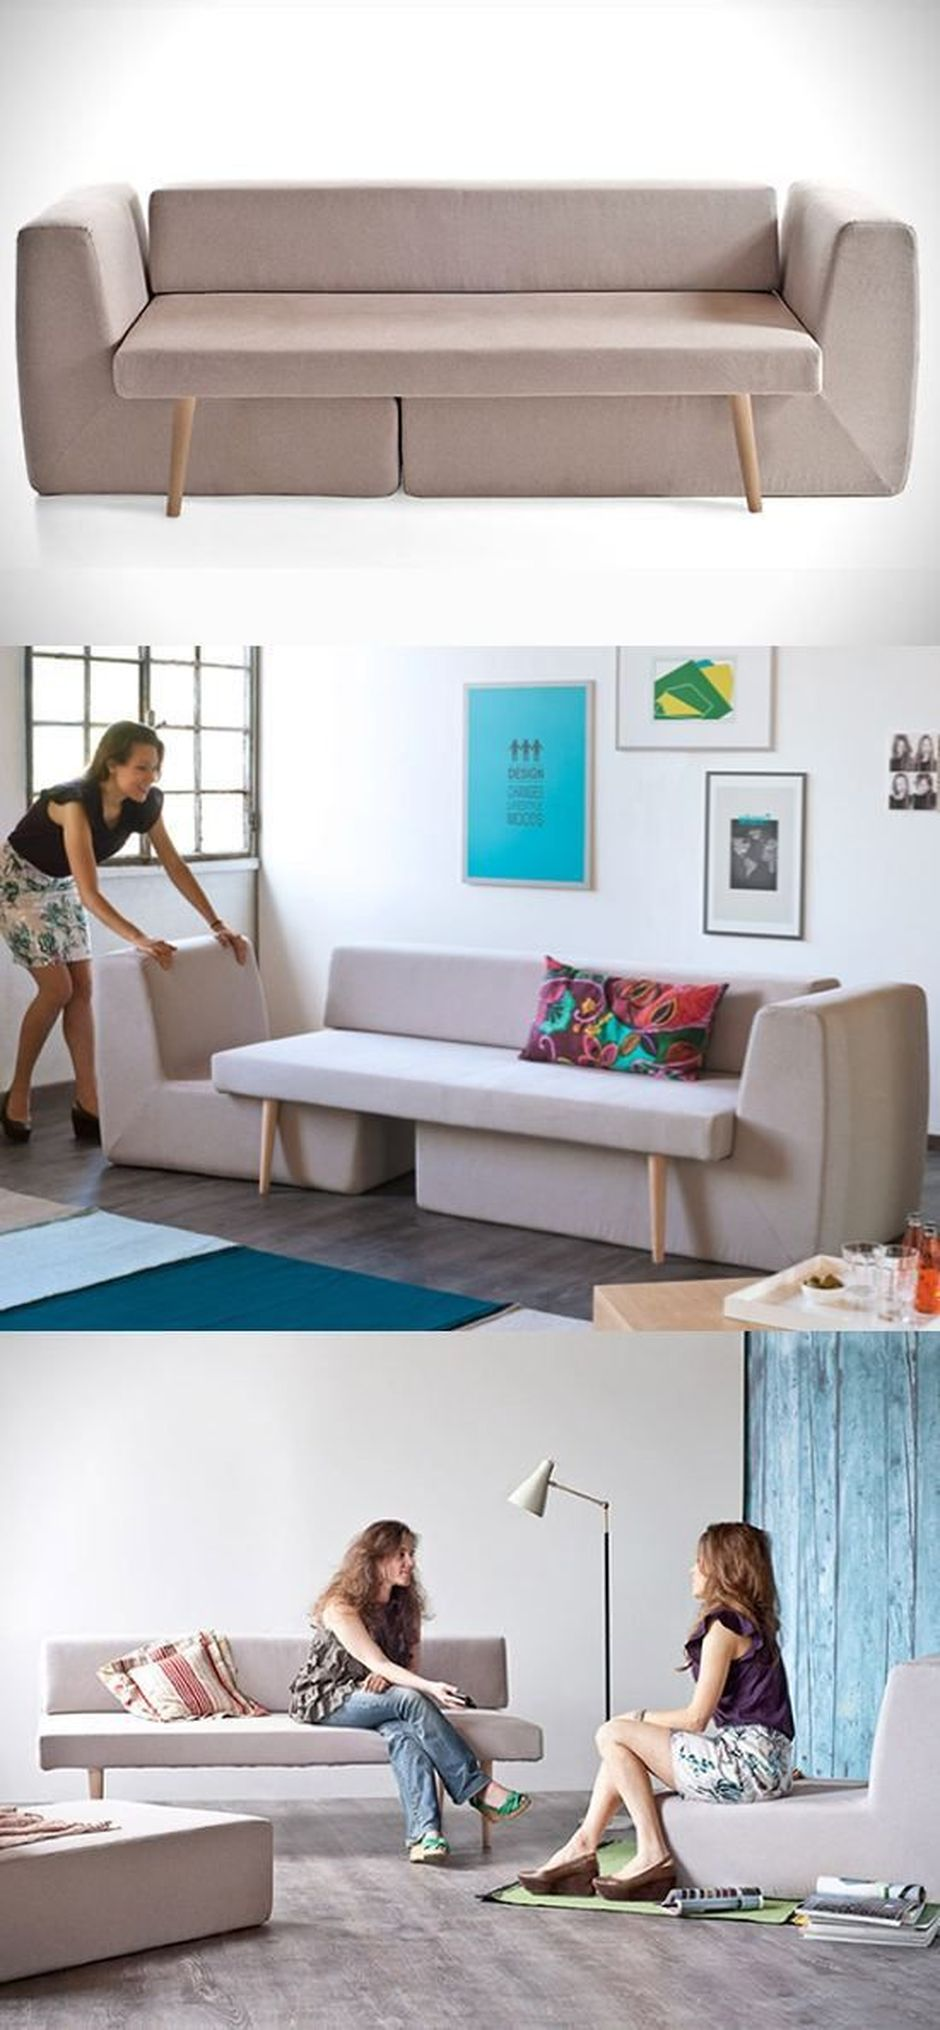 Cool Modular and Convertible Sofa Design for Small Living Room 13